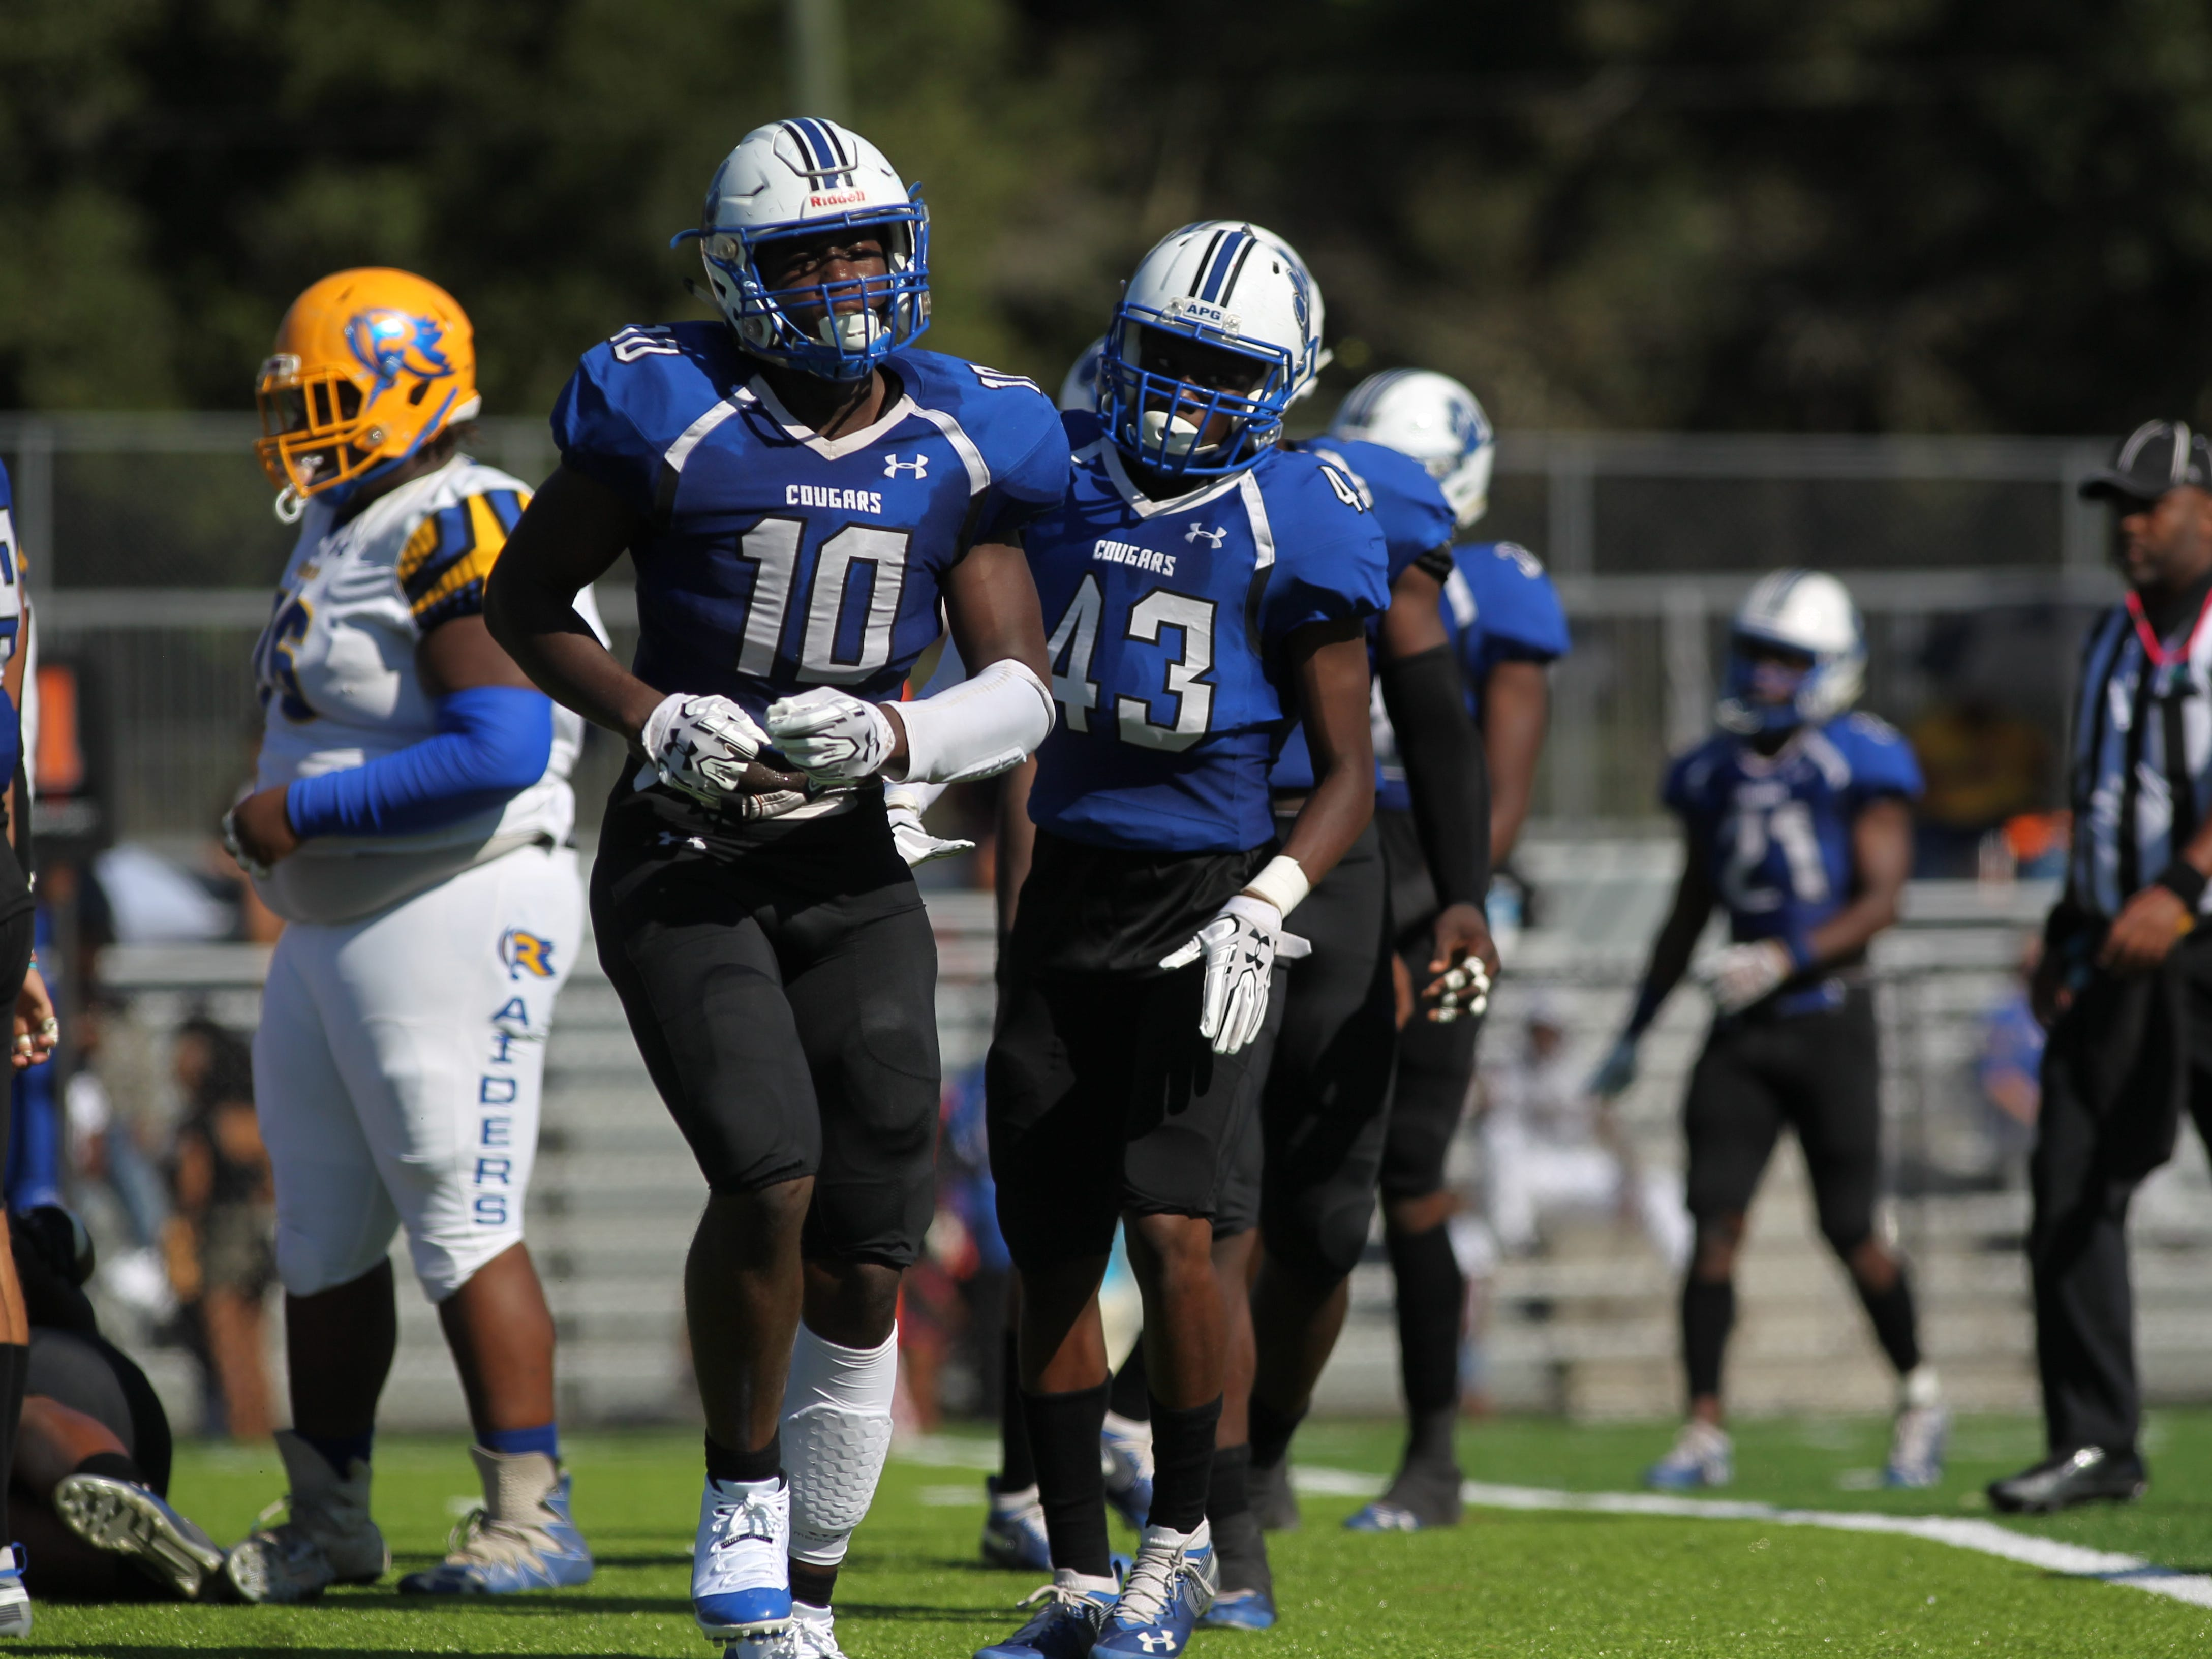 Godby's Cortez Andrews heads to the sideline after a sack against Rickards.